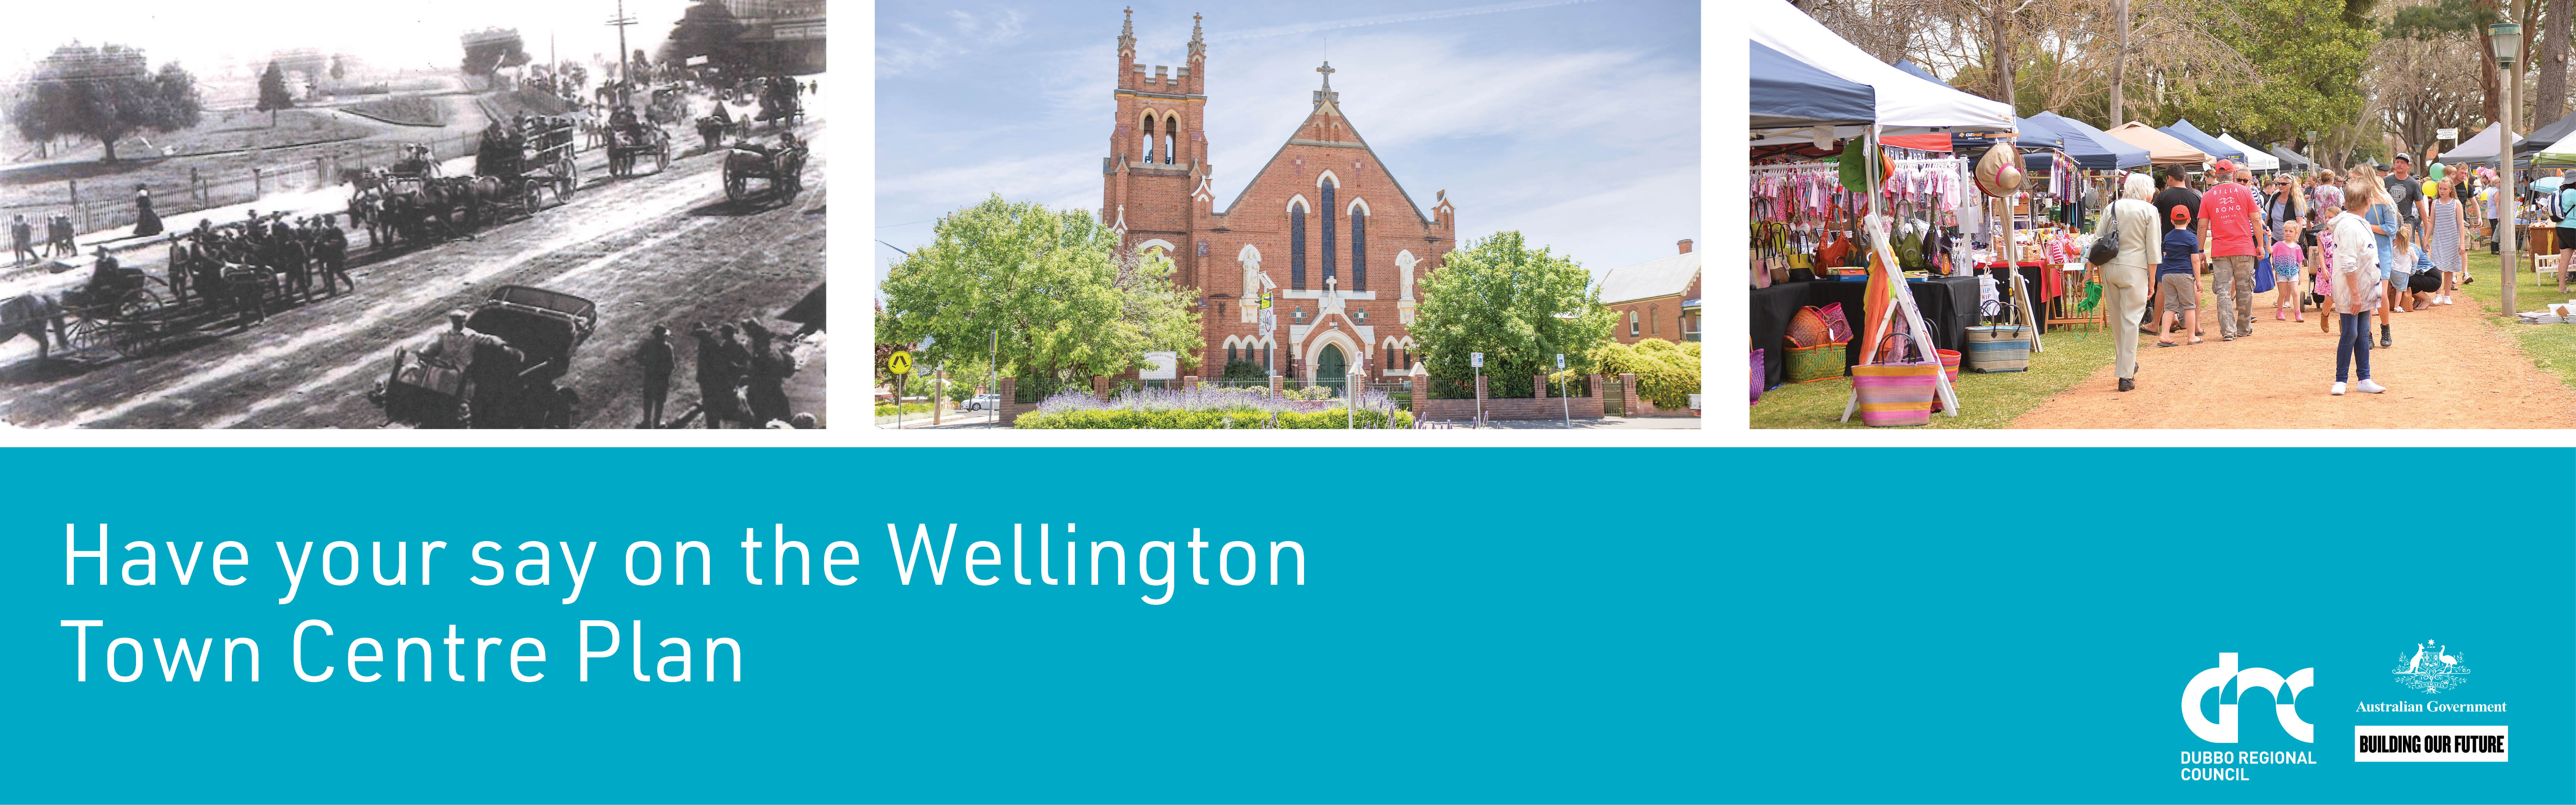 Tell us your Wellington stories. What do you see as the future of Wellington Town Centre?